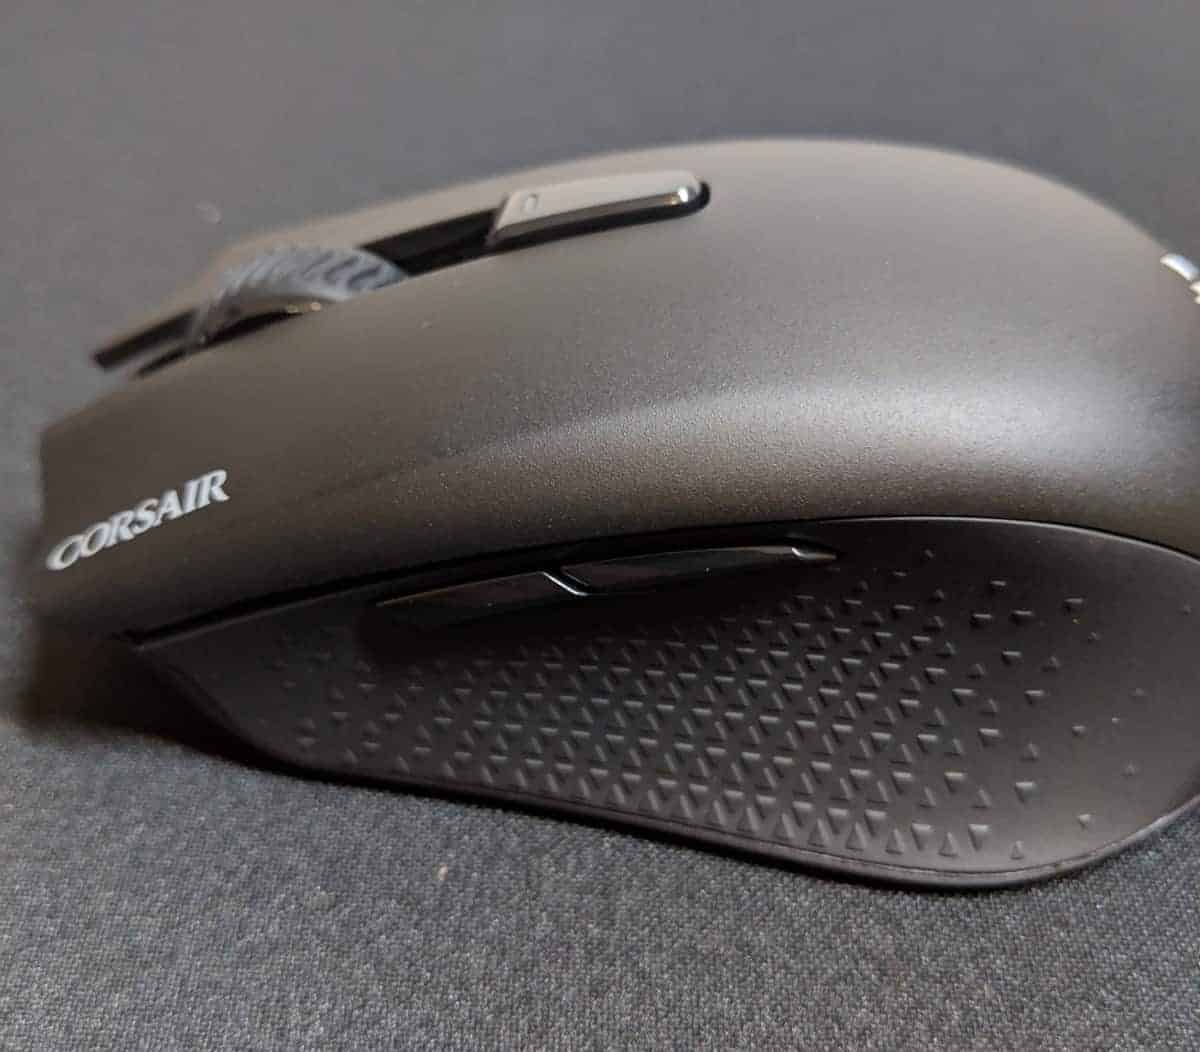 Corsair Harpoon Rgb Wireless Review The Streaming Blog